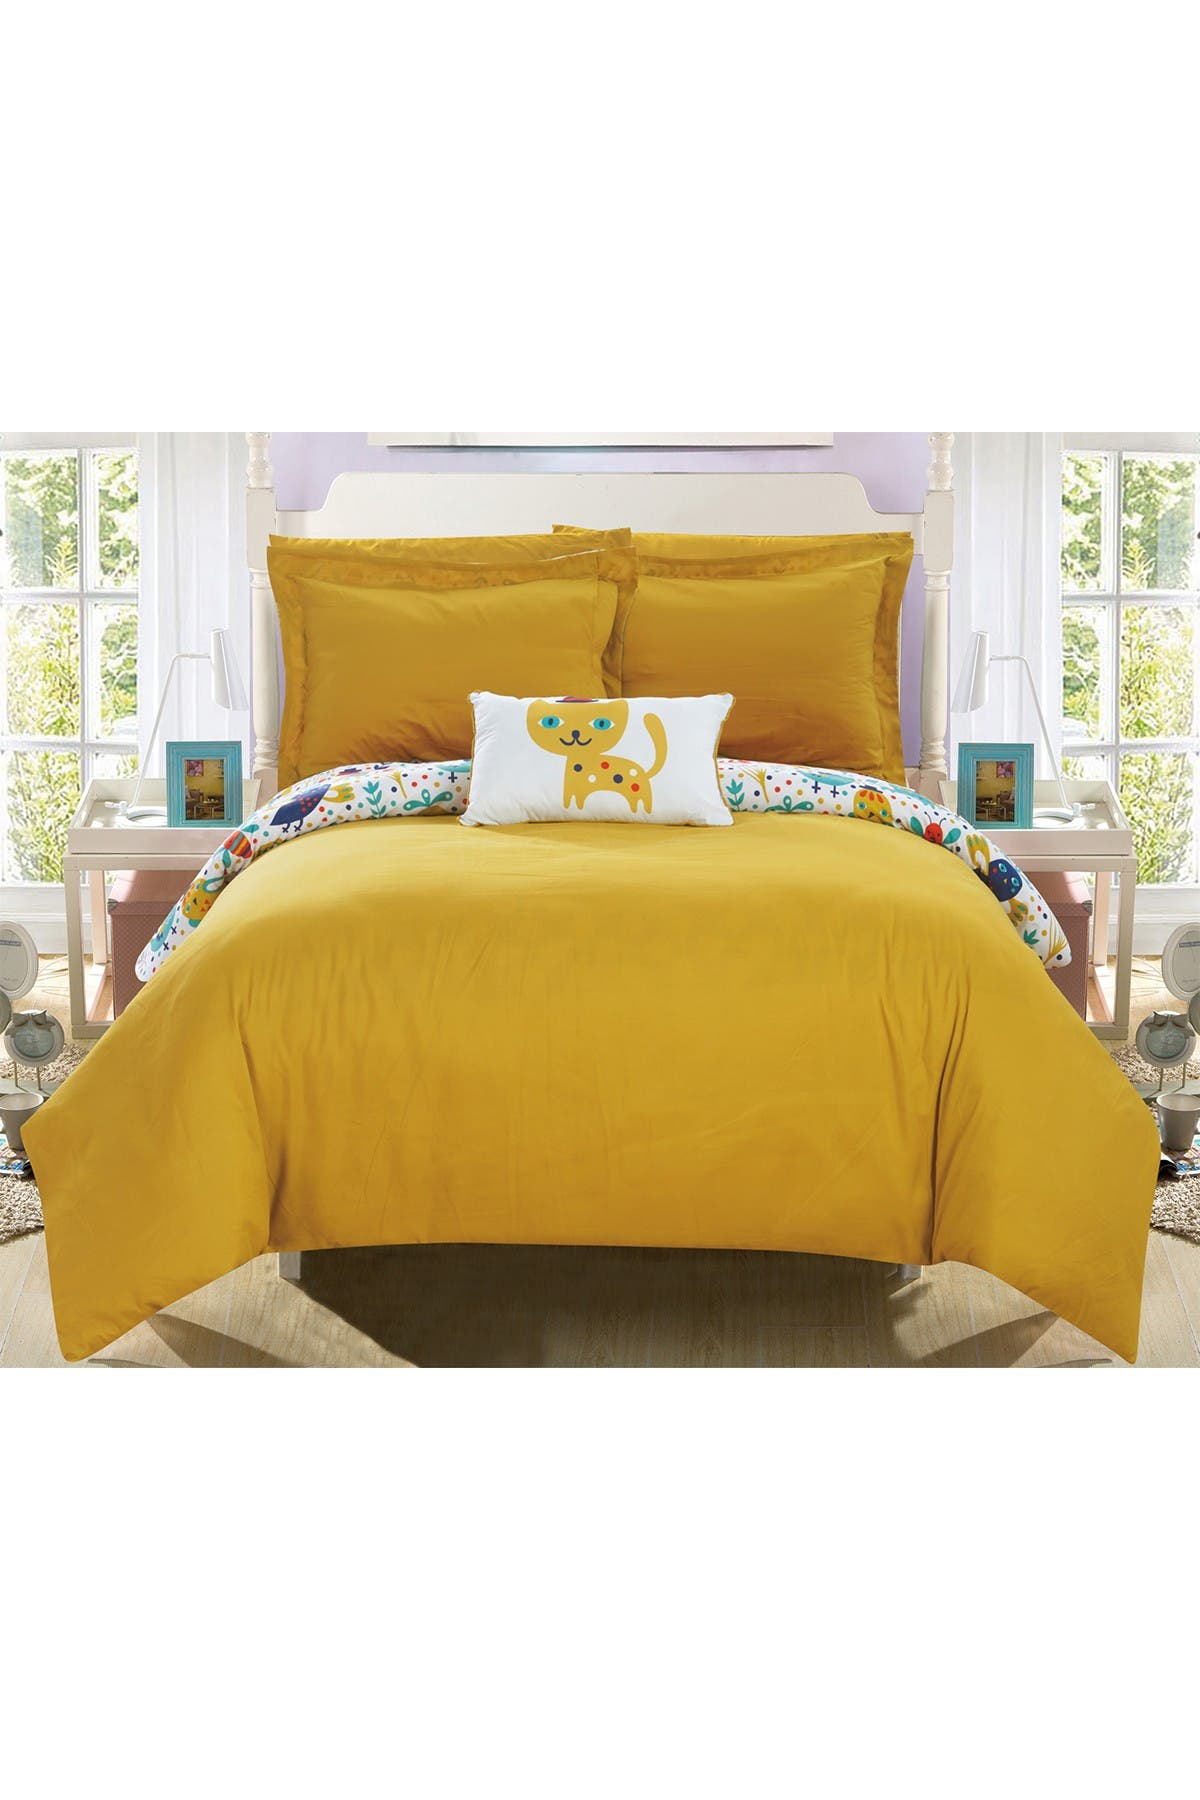 Image of Chic Home Bedding Yellow Siobhan Reversible Cute Animals Theme Print Design Full, Bed In a Bag Comforter 8-Piece Set - Yellow